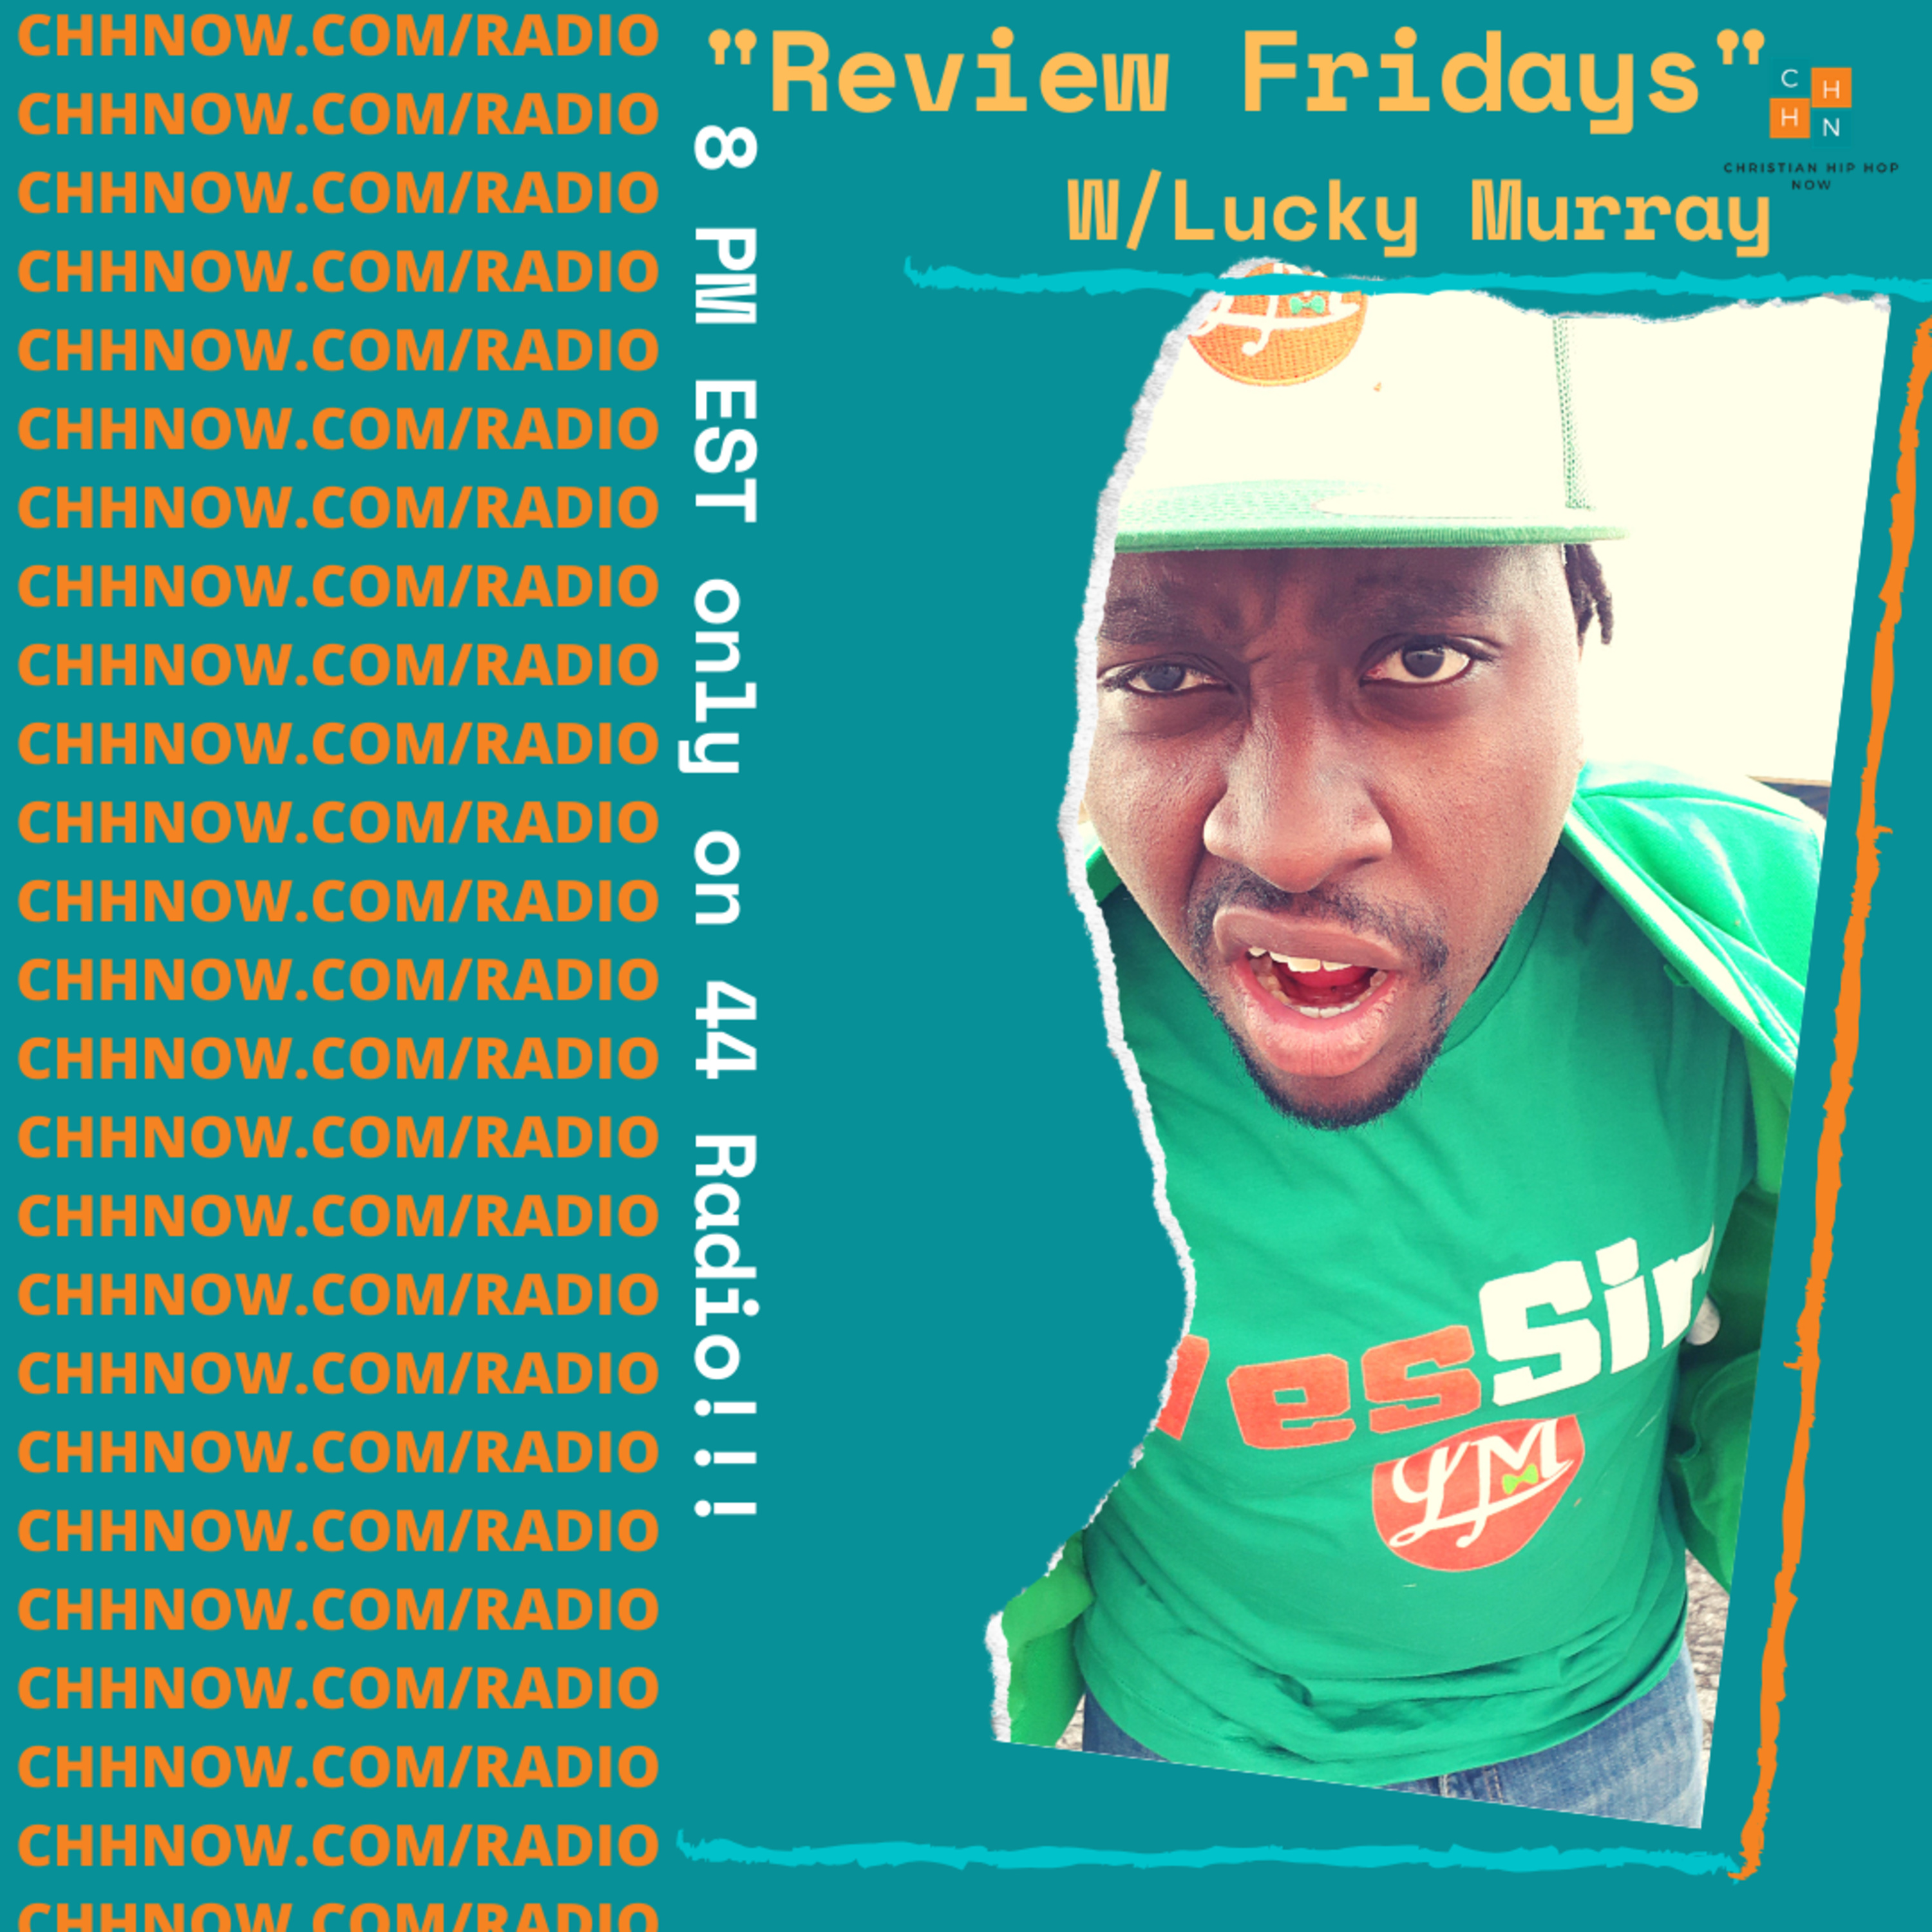 Review Friday's New Christian Hip Hop on 44 Radio 9-18-20